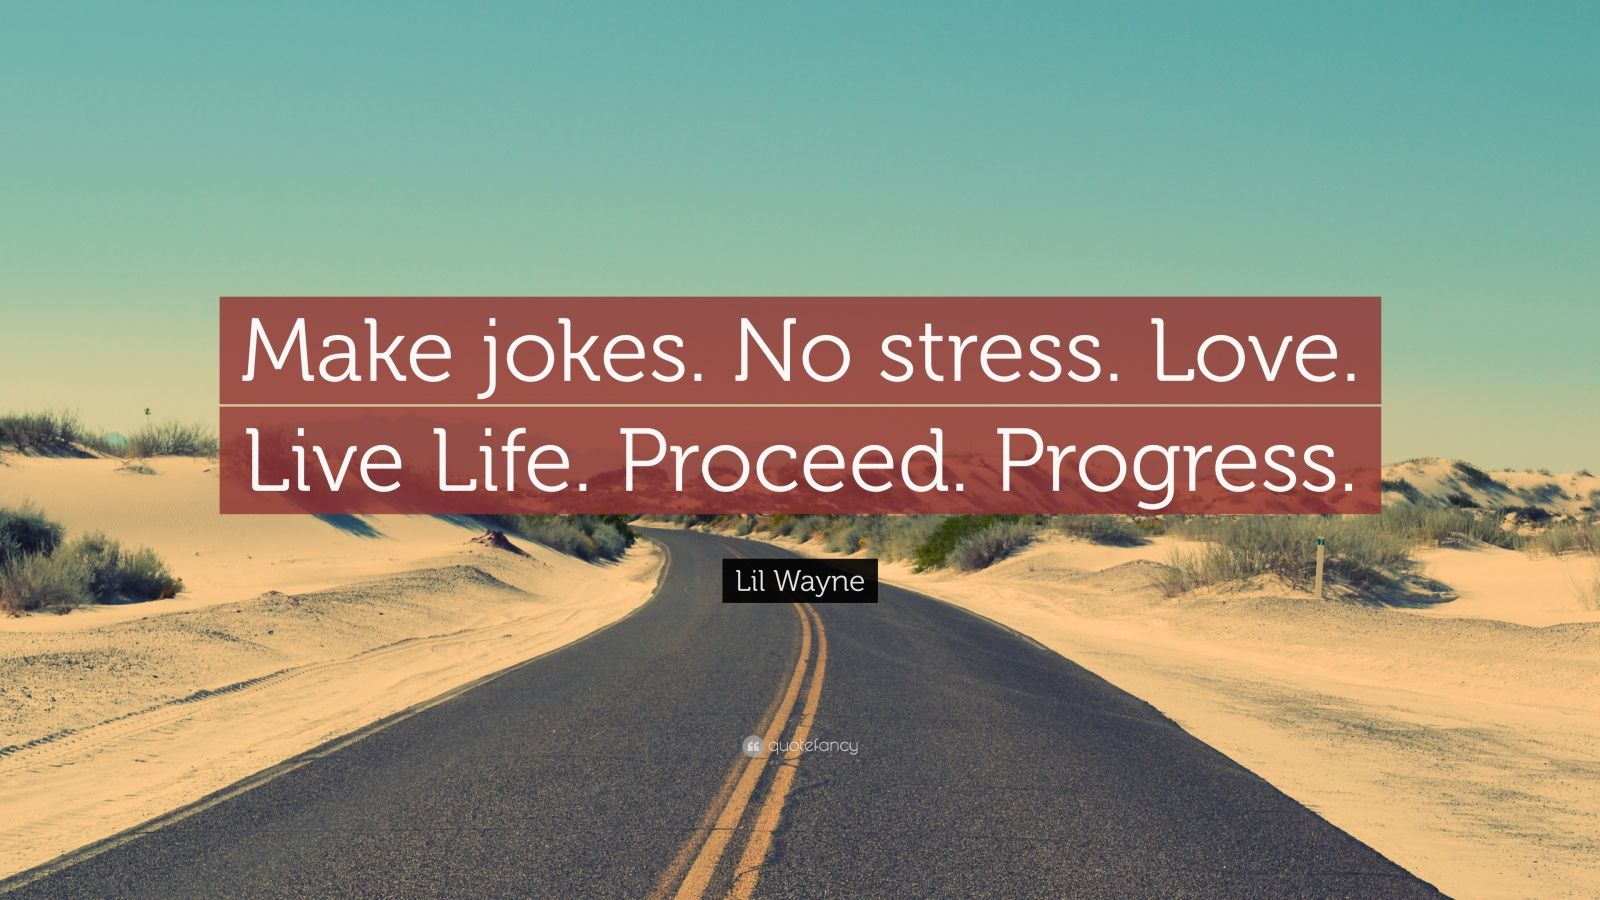 Make jokes no stress love live life proceed progress quote porn pictures